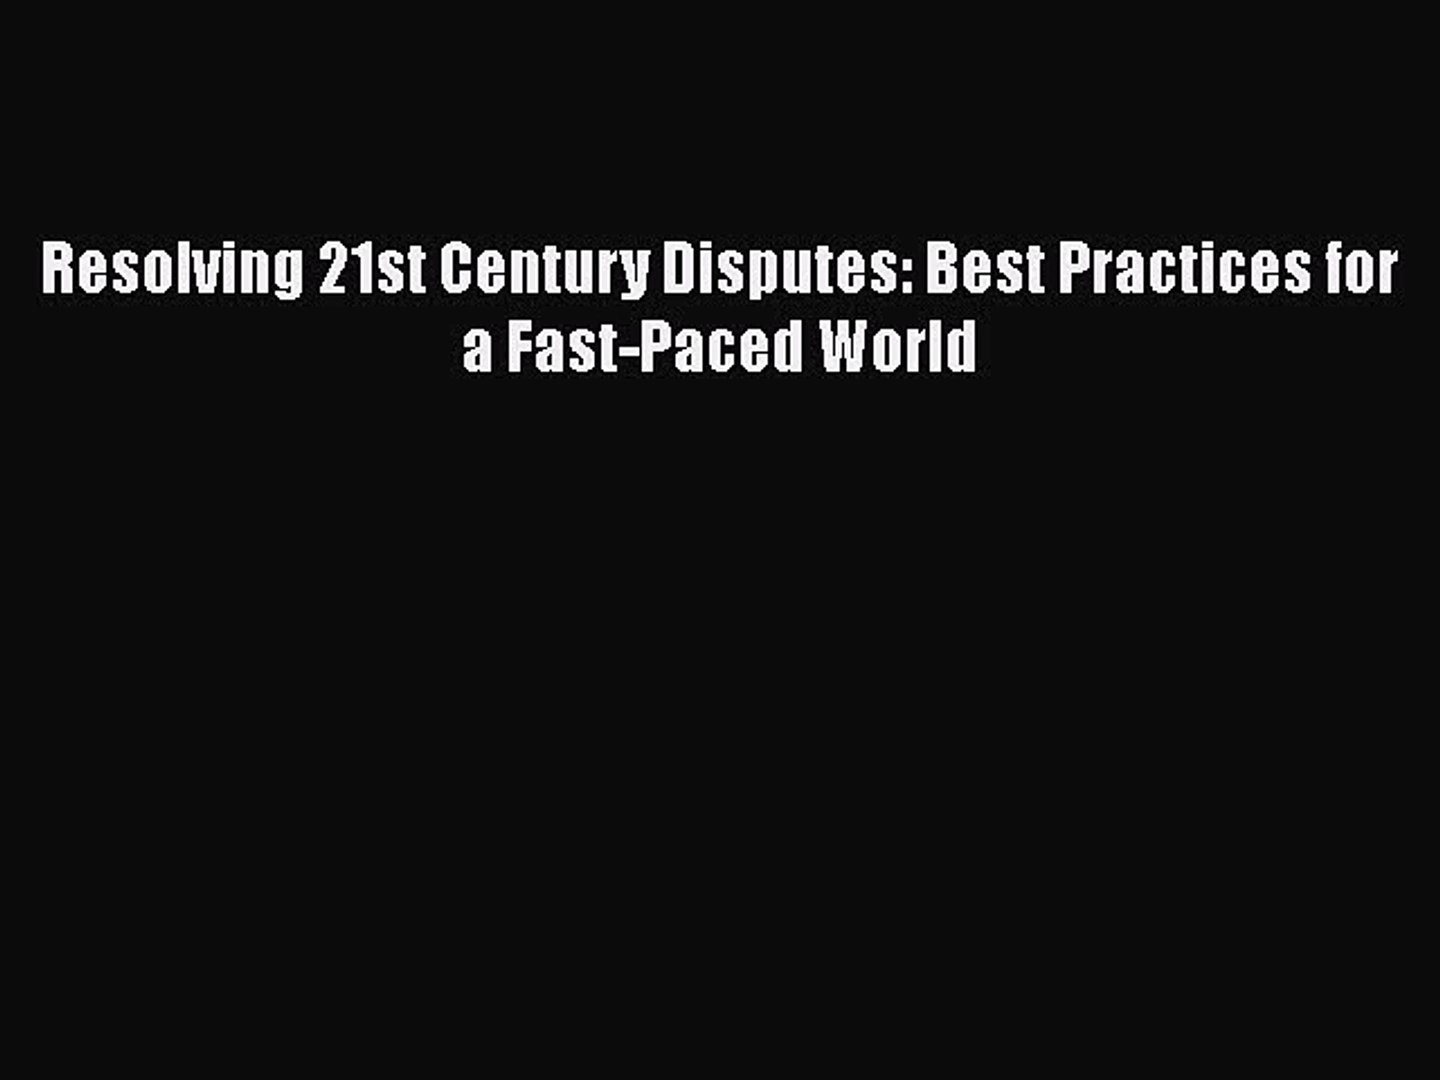 [PDF] Resolving 21st Century Disputes: Best Practices for a Fast-Paced World [Download] Full